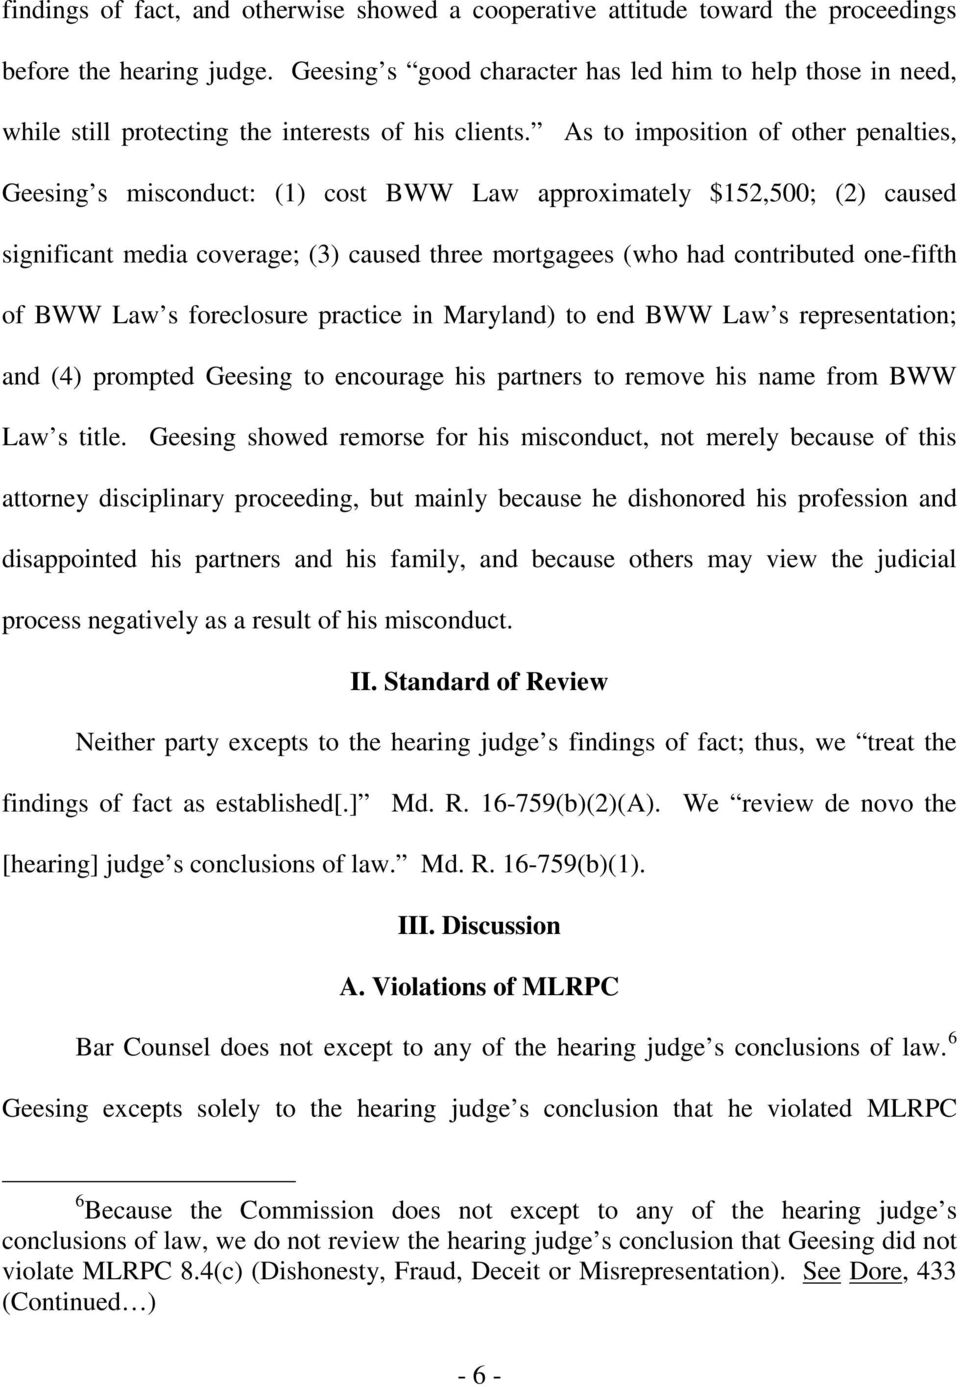 As to imposition of other penalties, Geesing s misconduct: (1) cost BWW Law approximately $152,500; (2) caused significant media coverage; (3) caused three mortgagees (who had contributed one-fifth